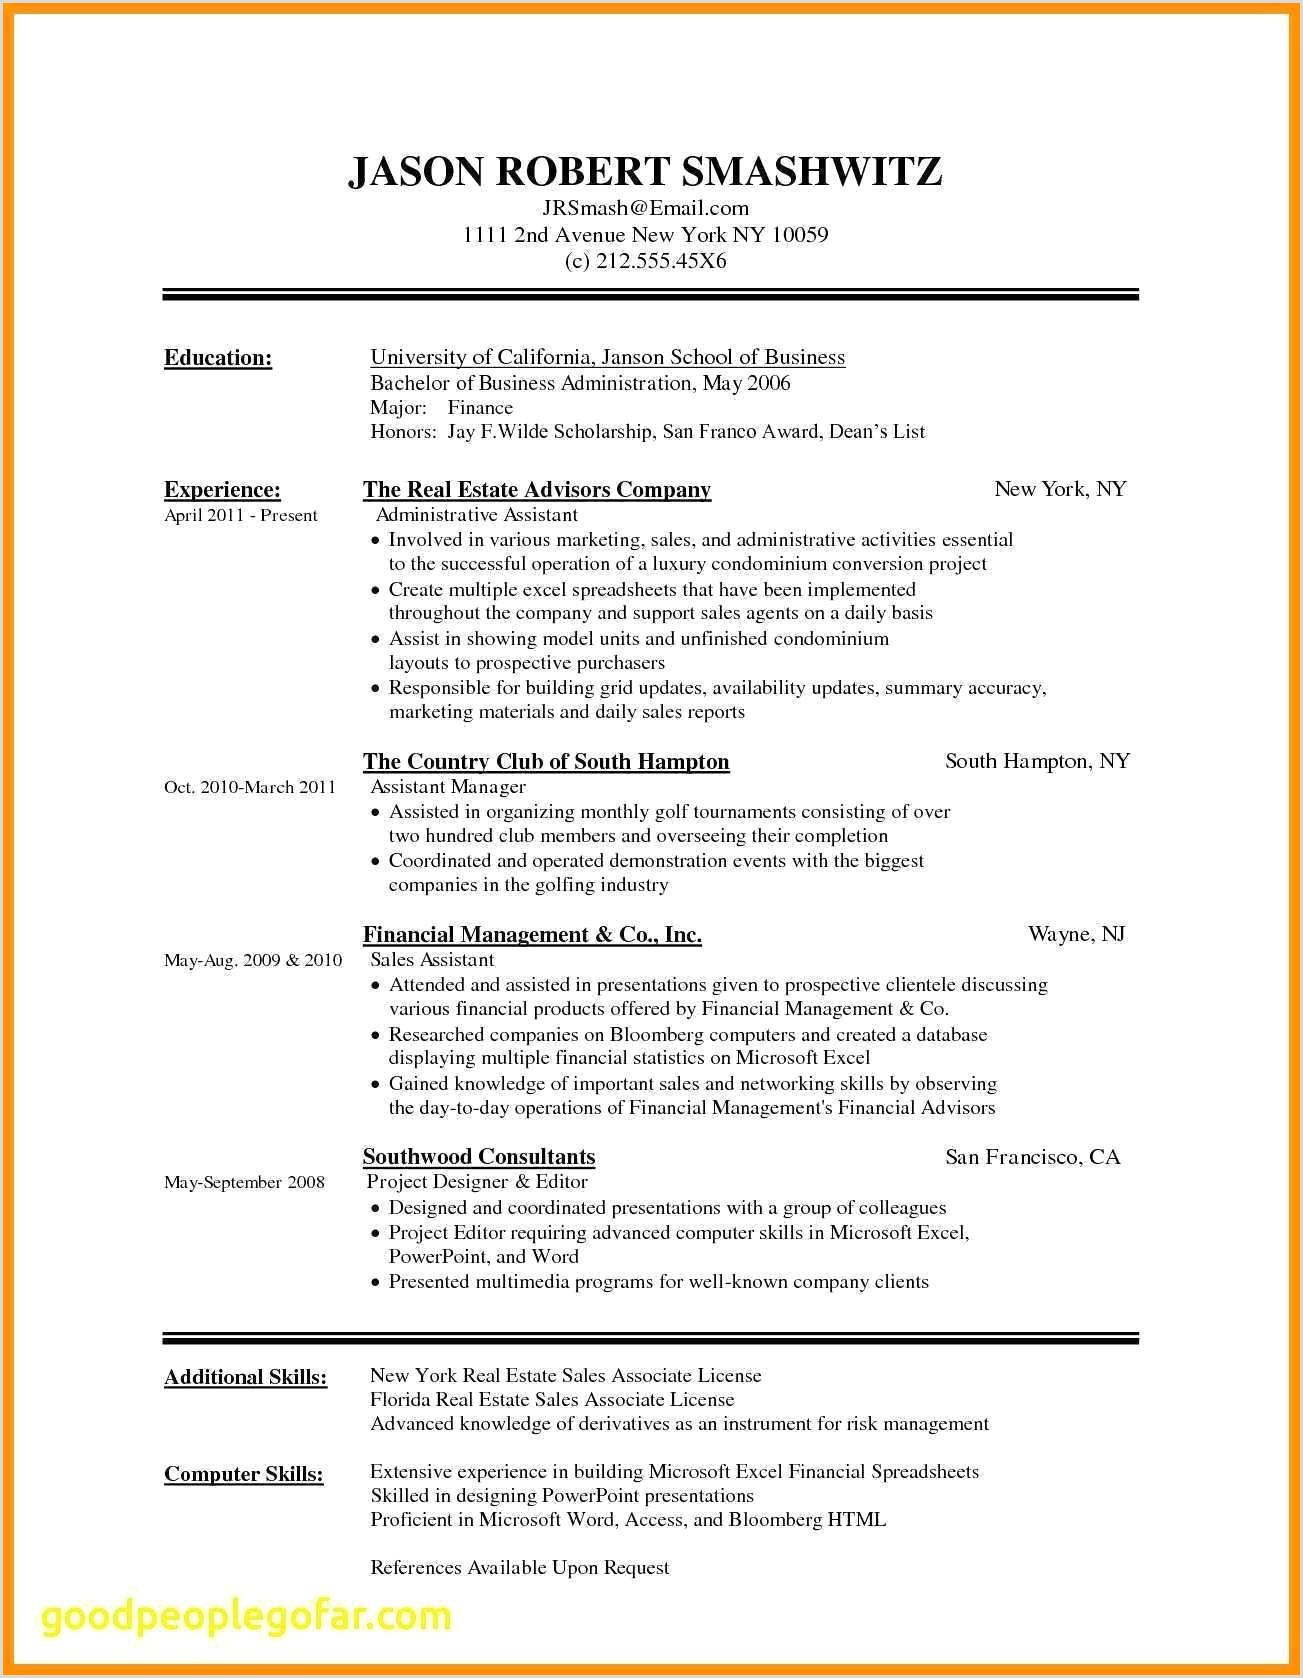 Resume Sample Format Doc New Resume Template Doc New Resume